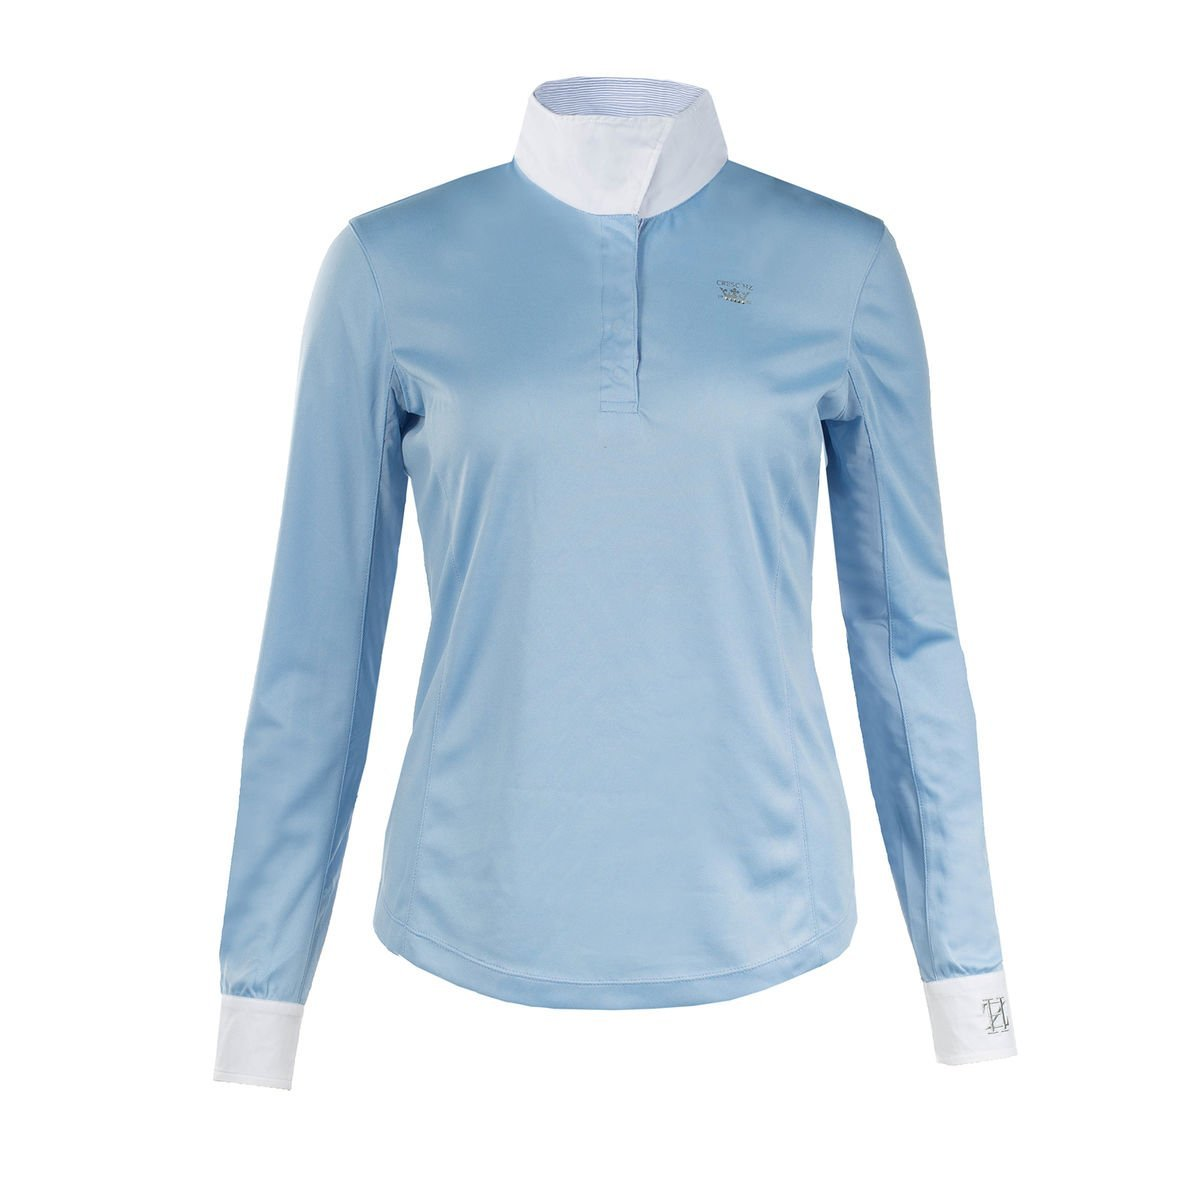 HORZE Blaire Ladies UV Ice Fit Long Sleeve Show Shirt, Blue, 10 by HORZE